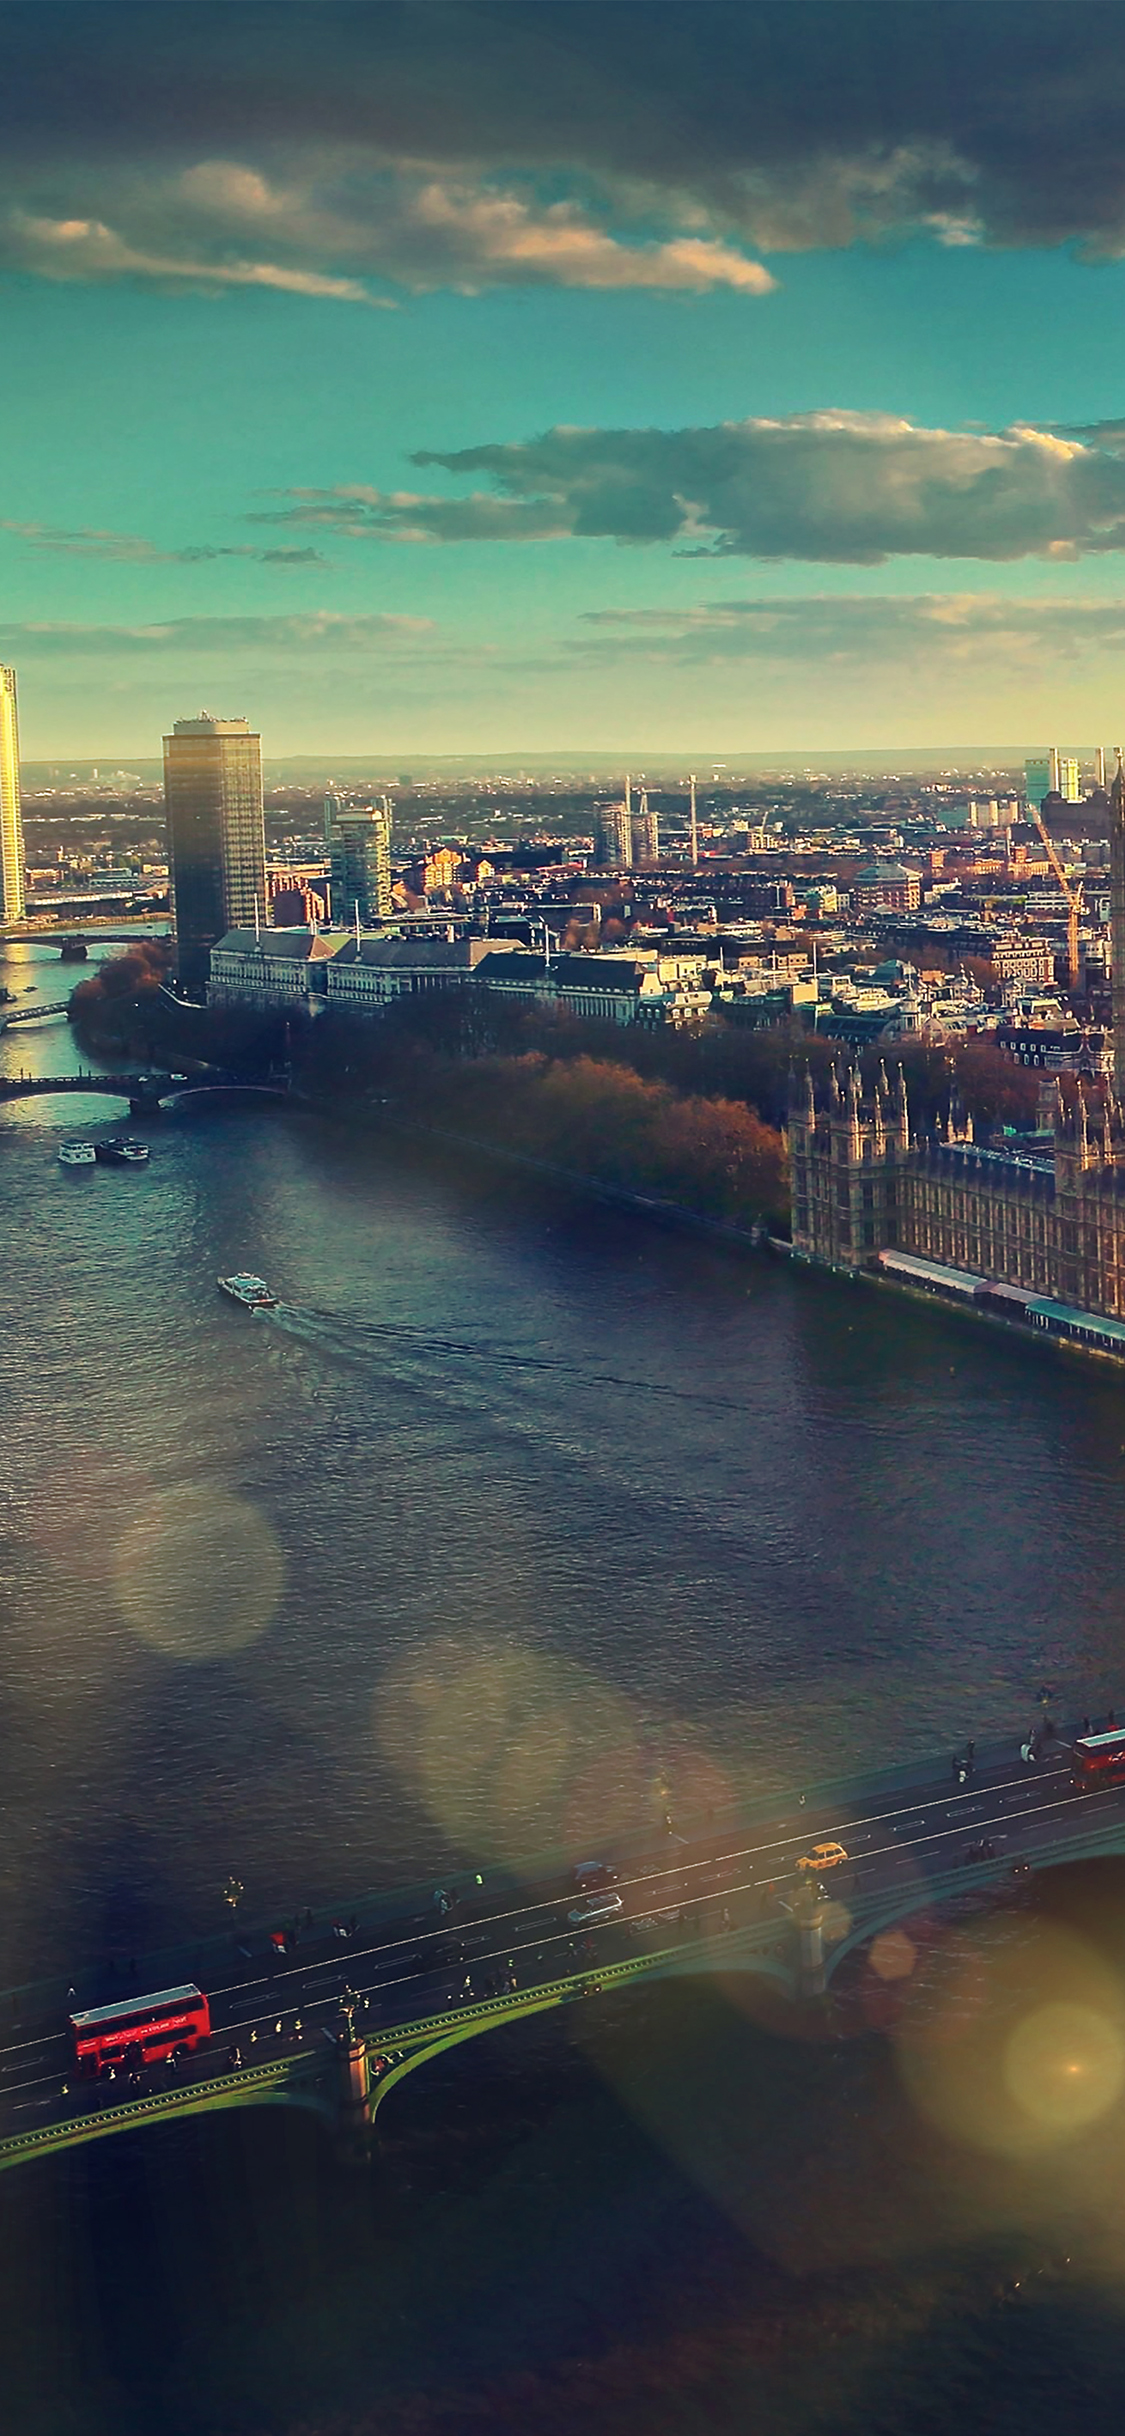 England London Sky View City Iphone Wallpapers Free Download